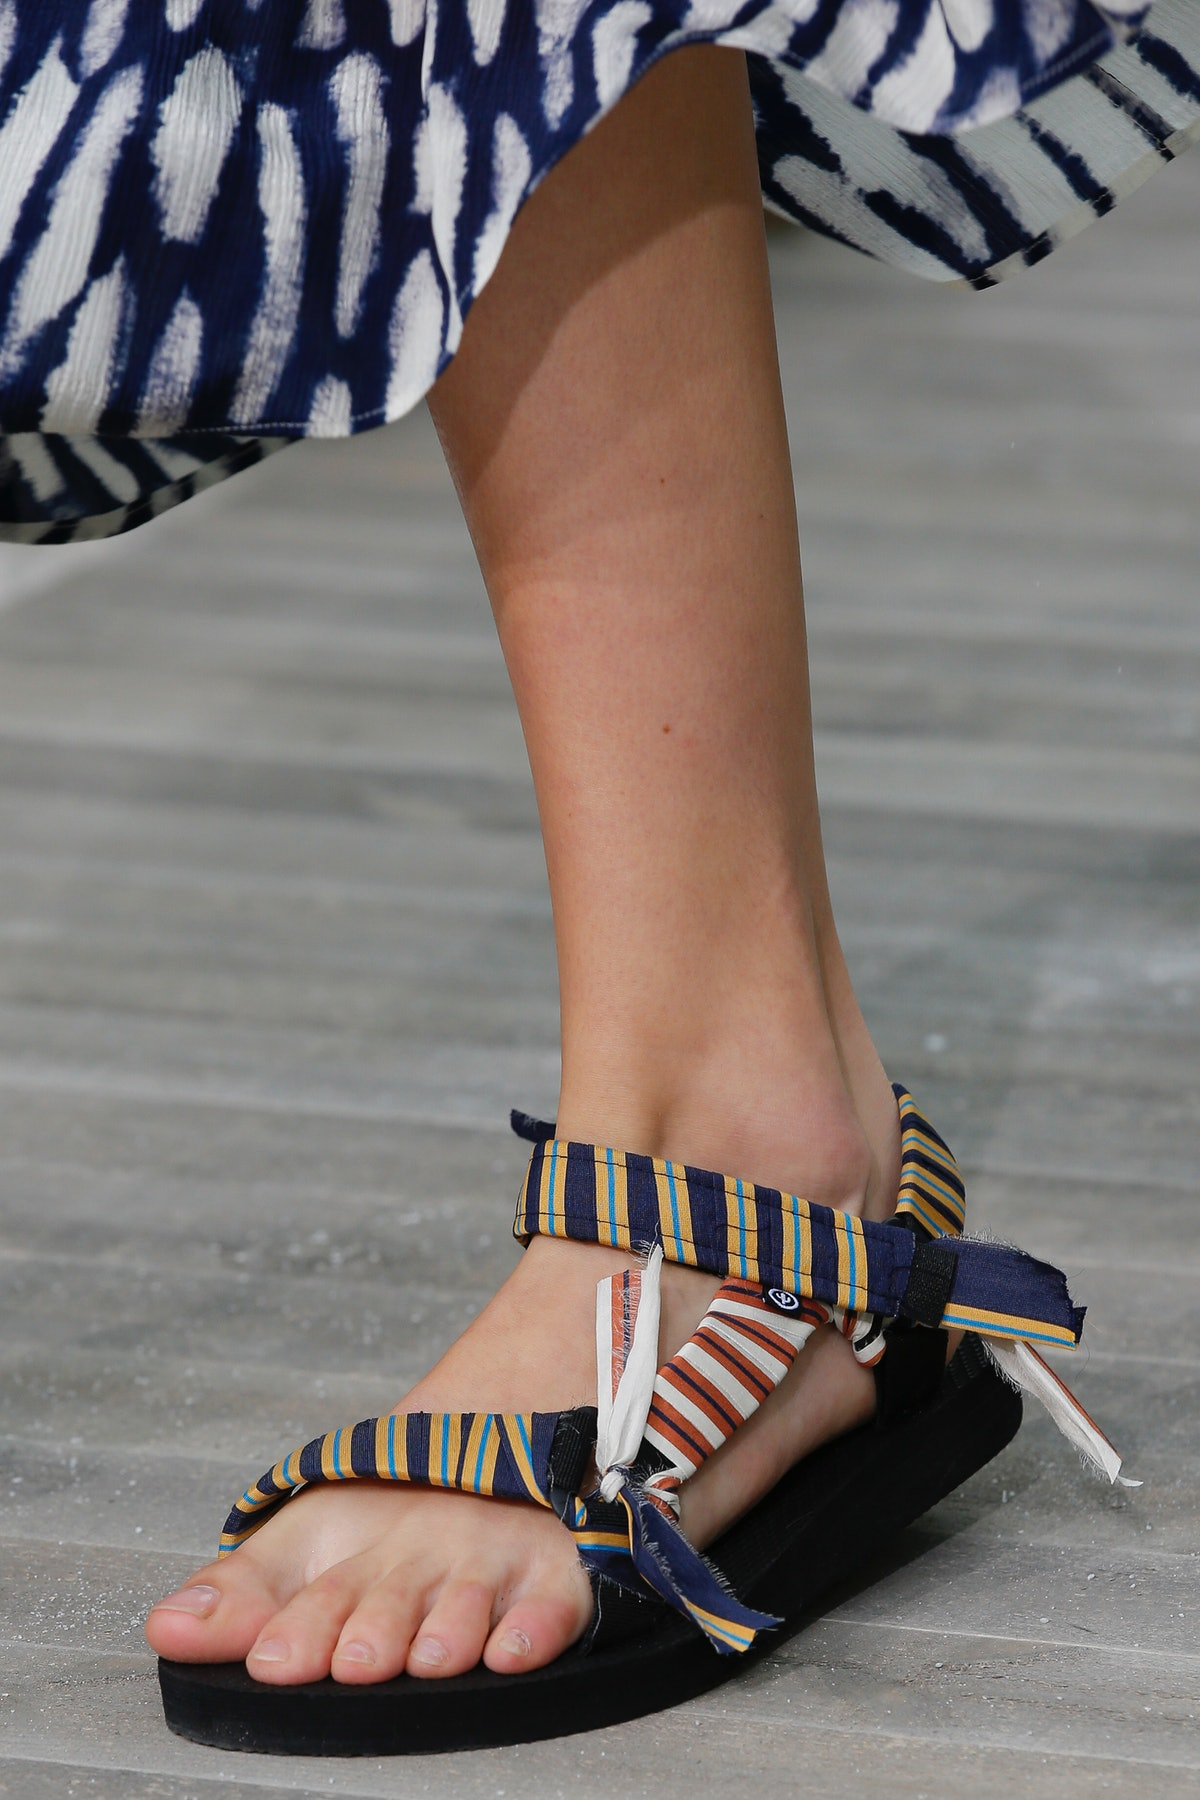 A model's foot in a striped, fabric-covered sport sandal, a 2021 shoe trend making a comeback